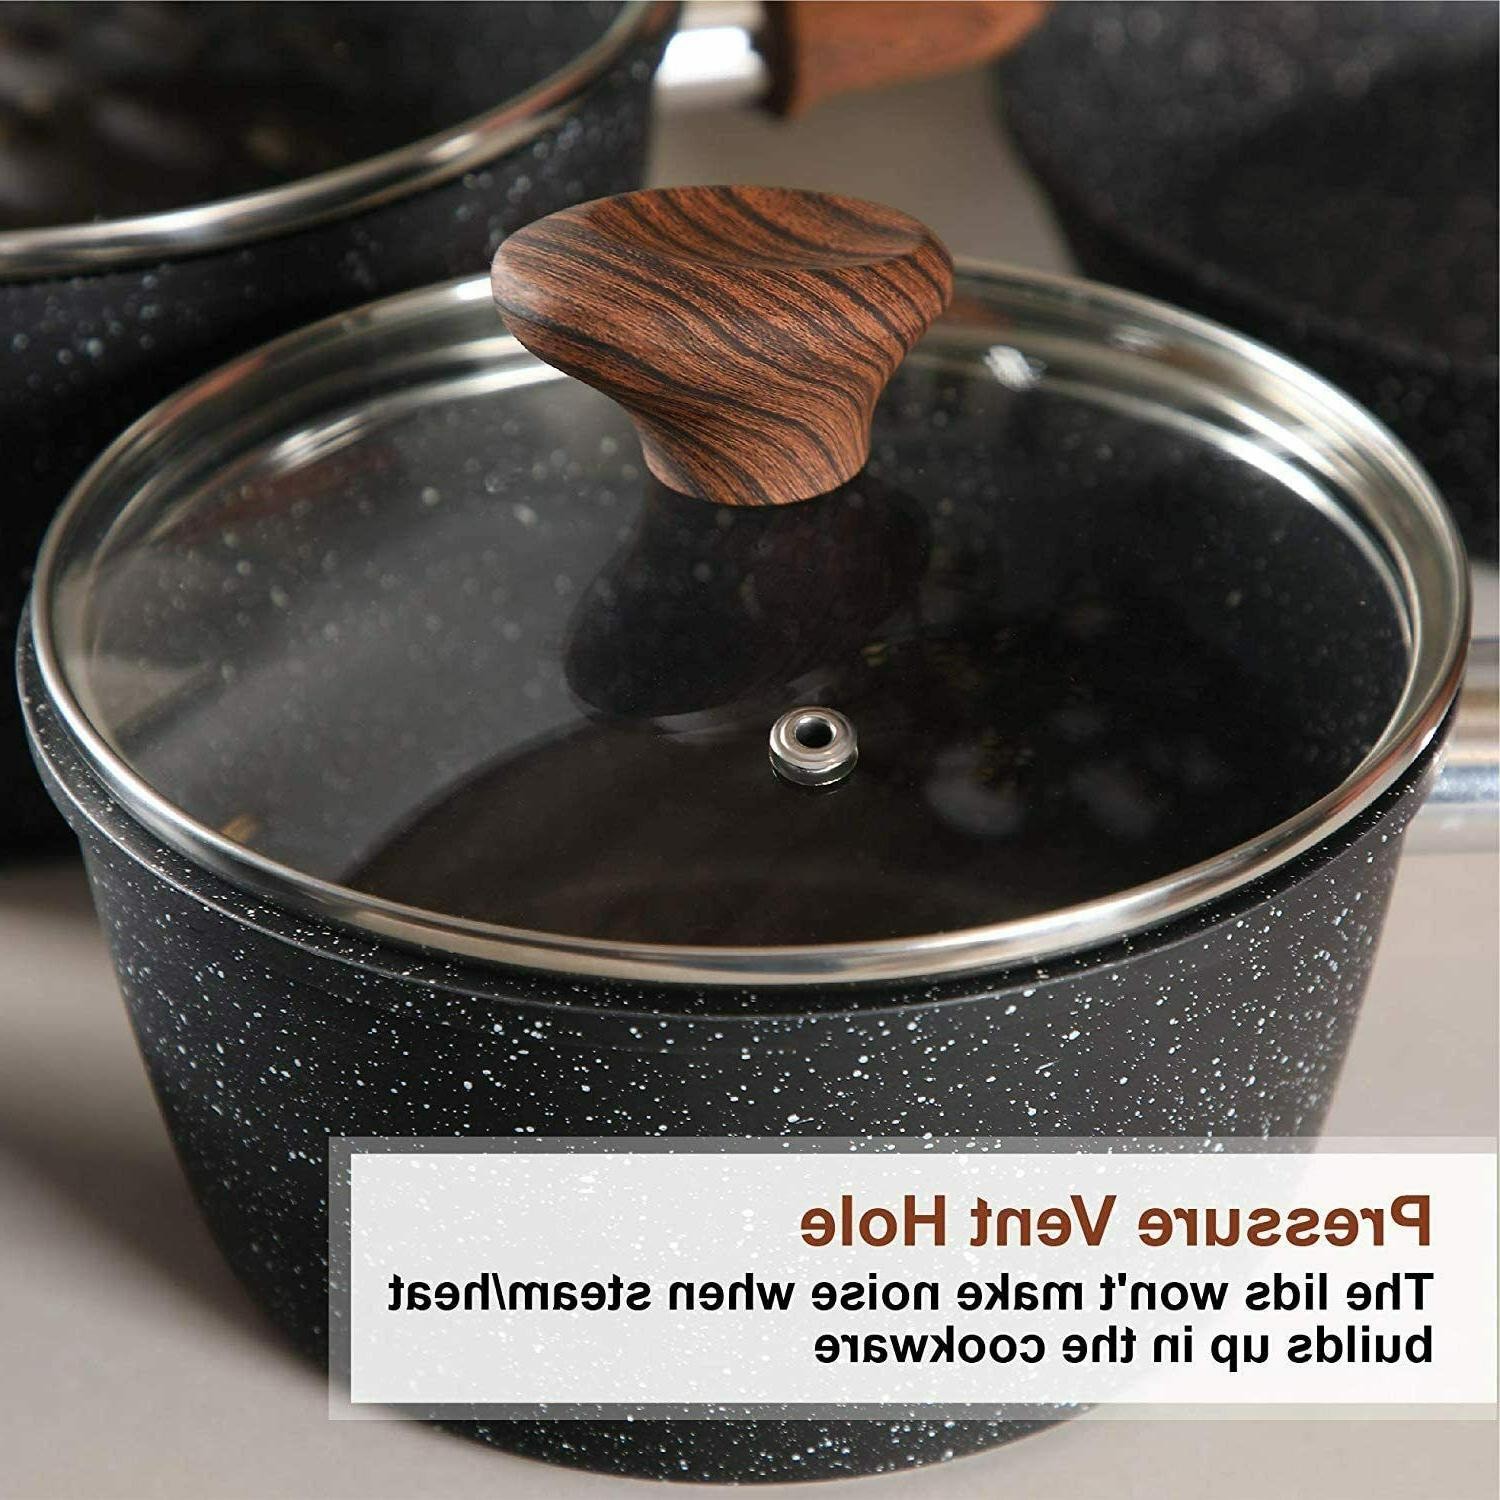 12 Piece Granite-Coated Cookware Set Pots and